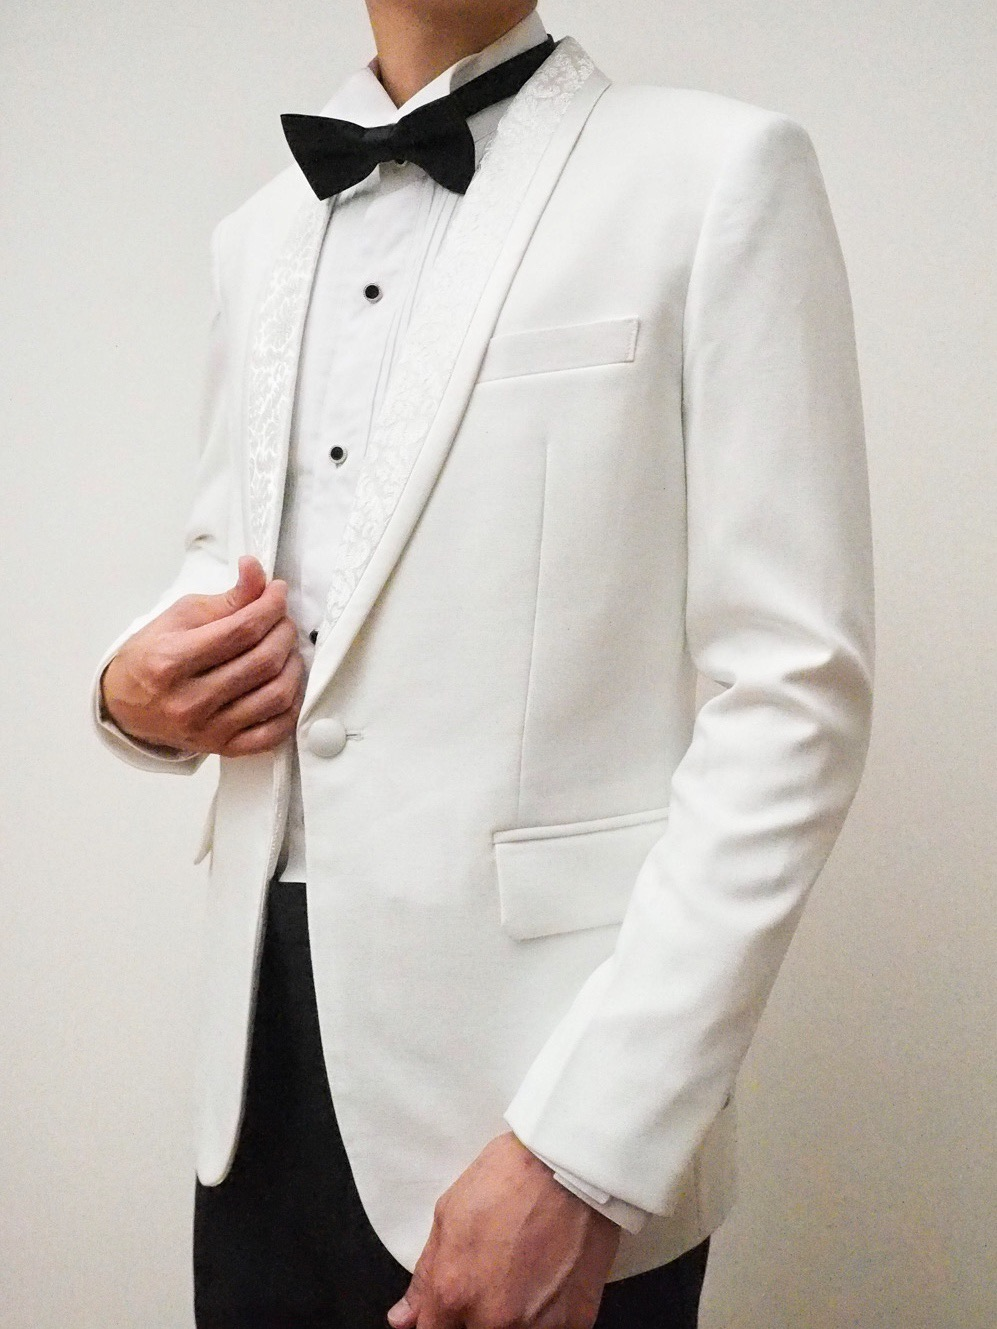 Jacquard fabric on lapels of white suit by CCM Wedding